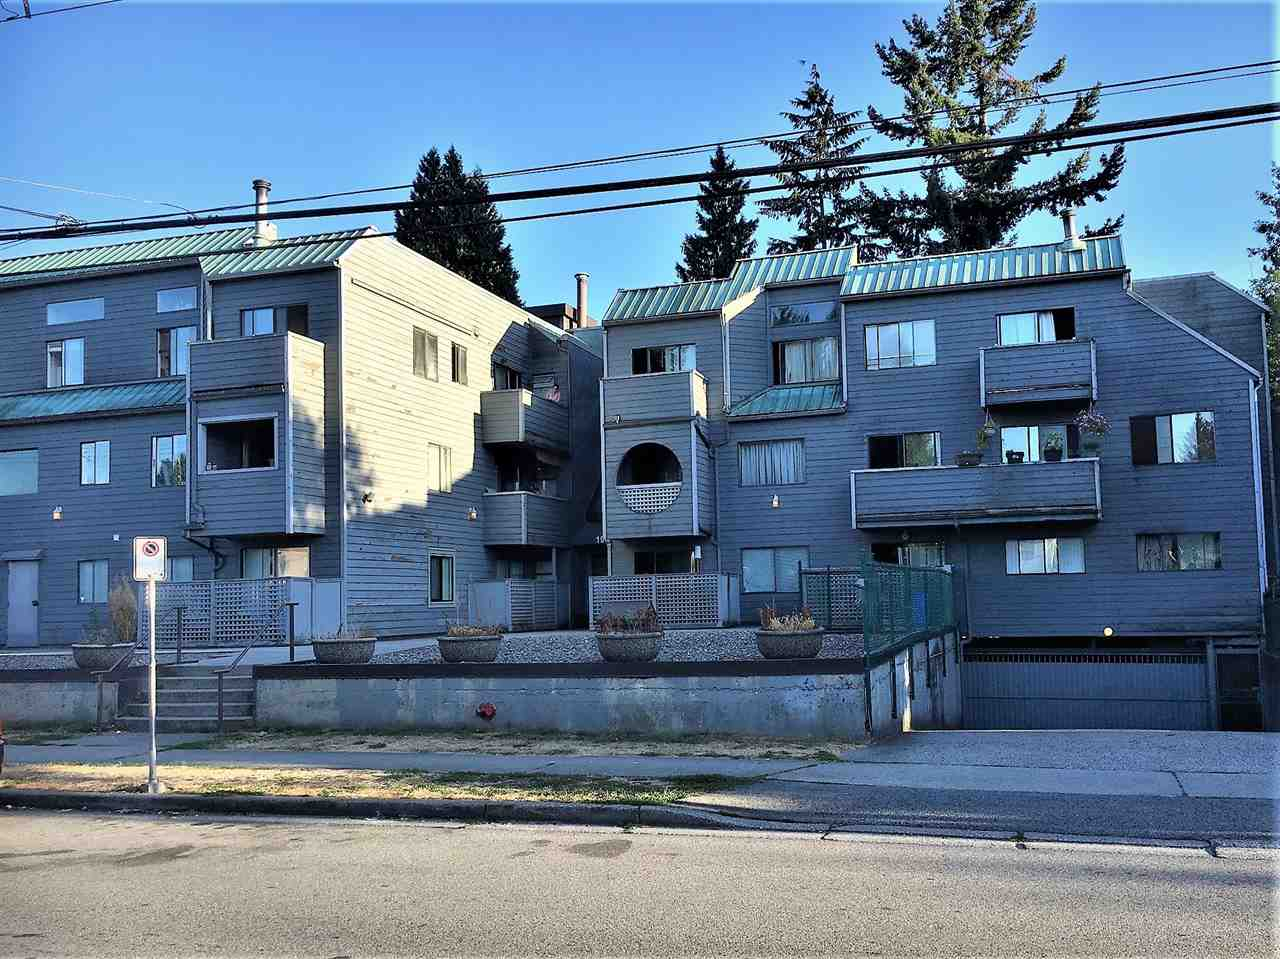 "Main Photo: 103 1948 COQUITLAM Avenue in Port Coquitlam: Glenwood PQ Condo for sale in ""COQUITLAM PLACE"" : MLS® # R2201314"